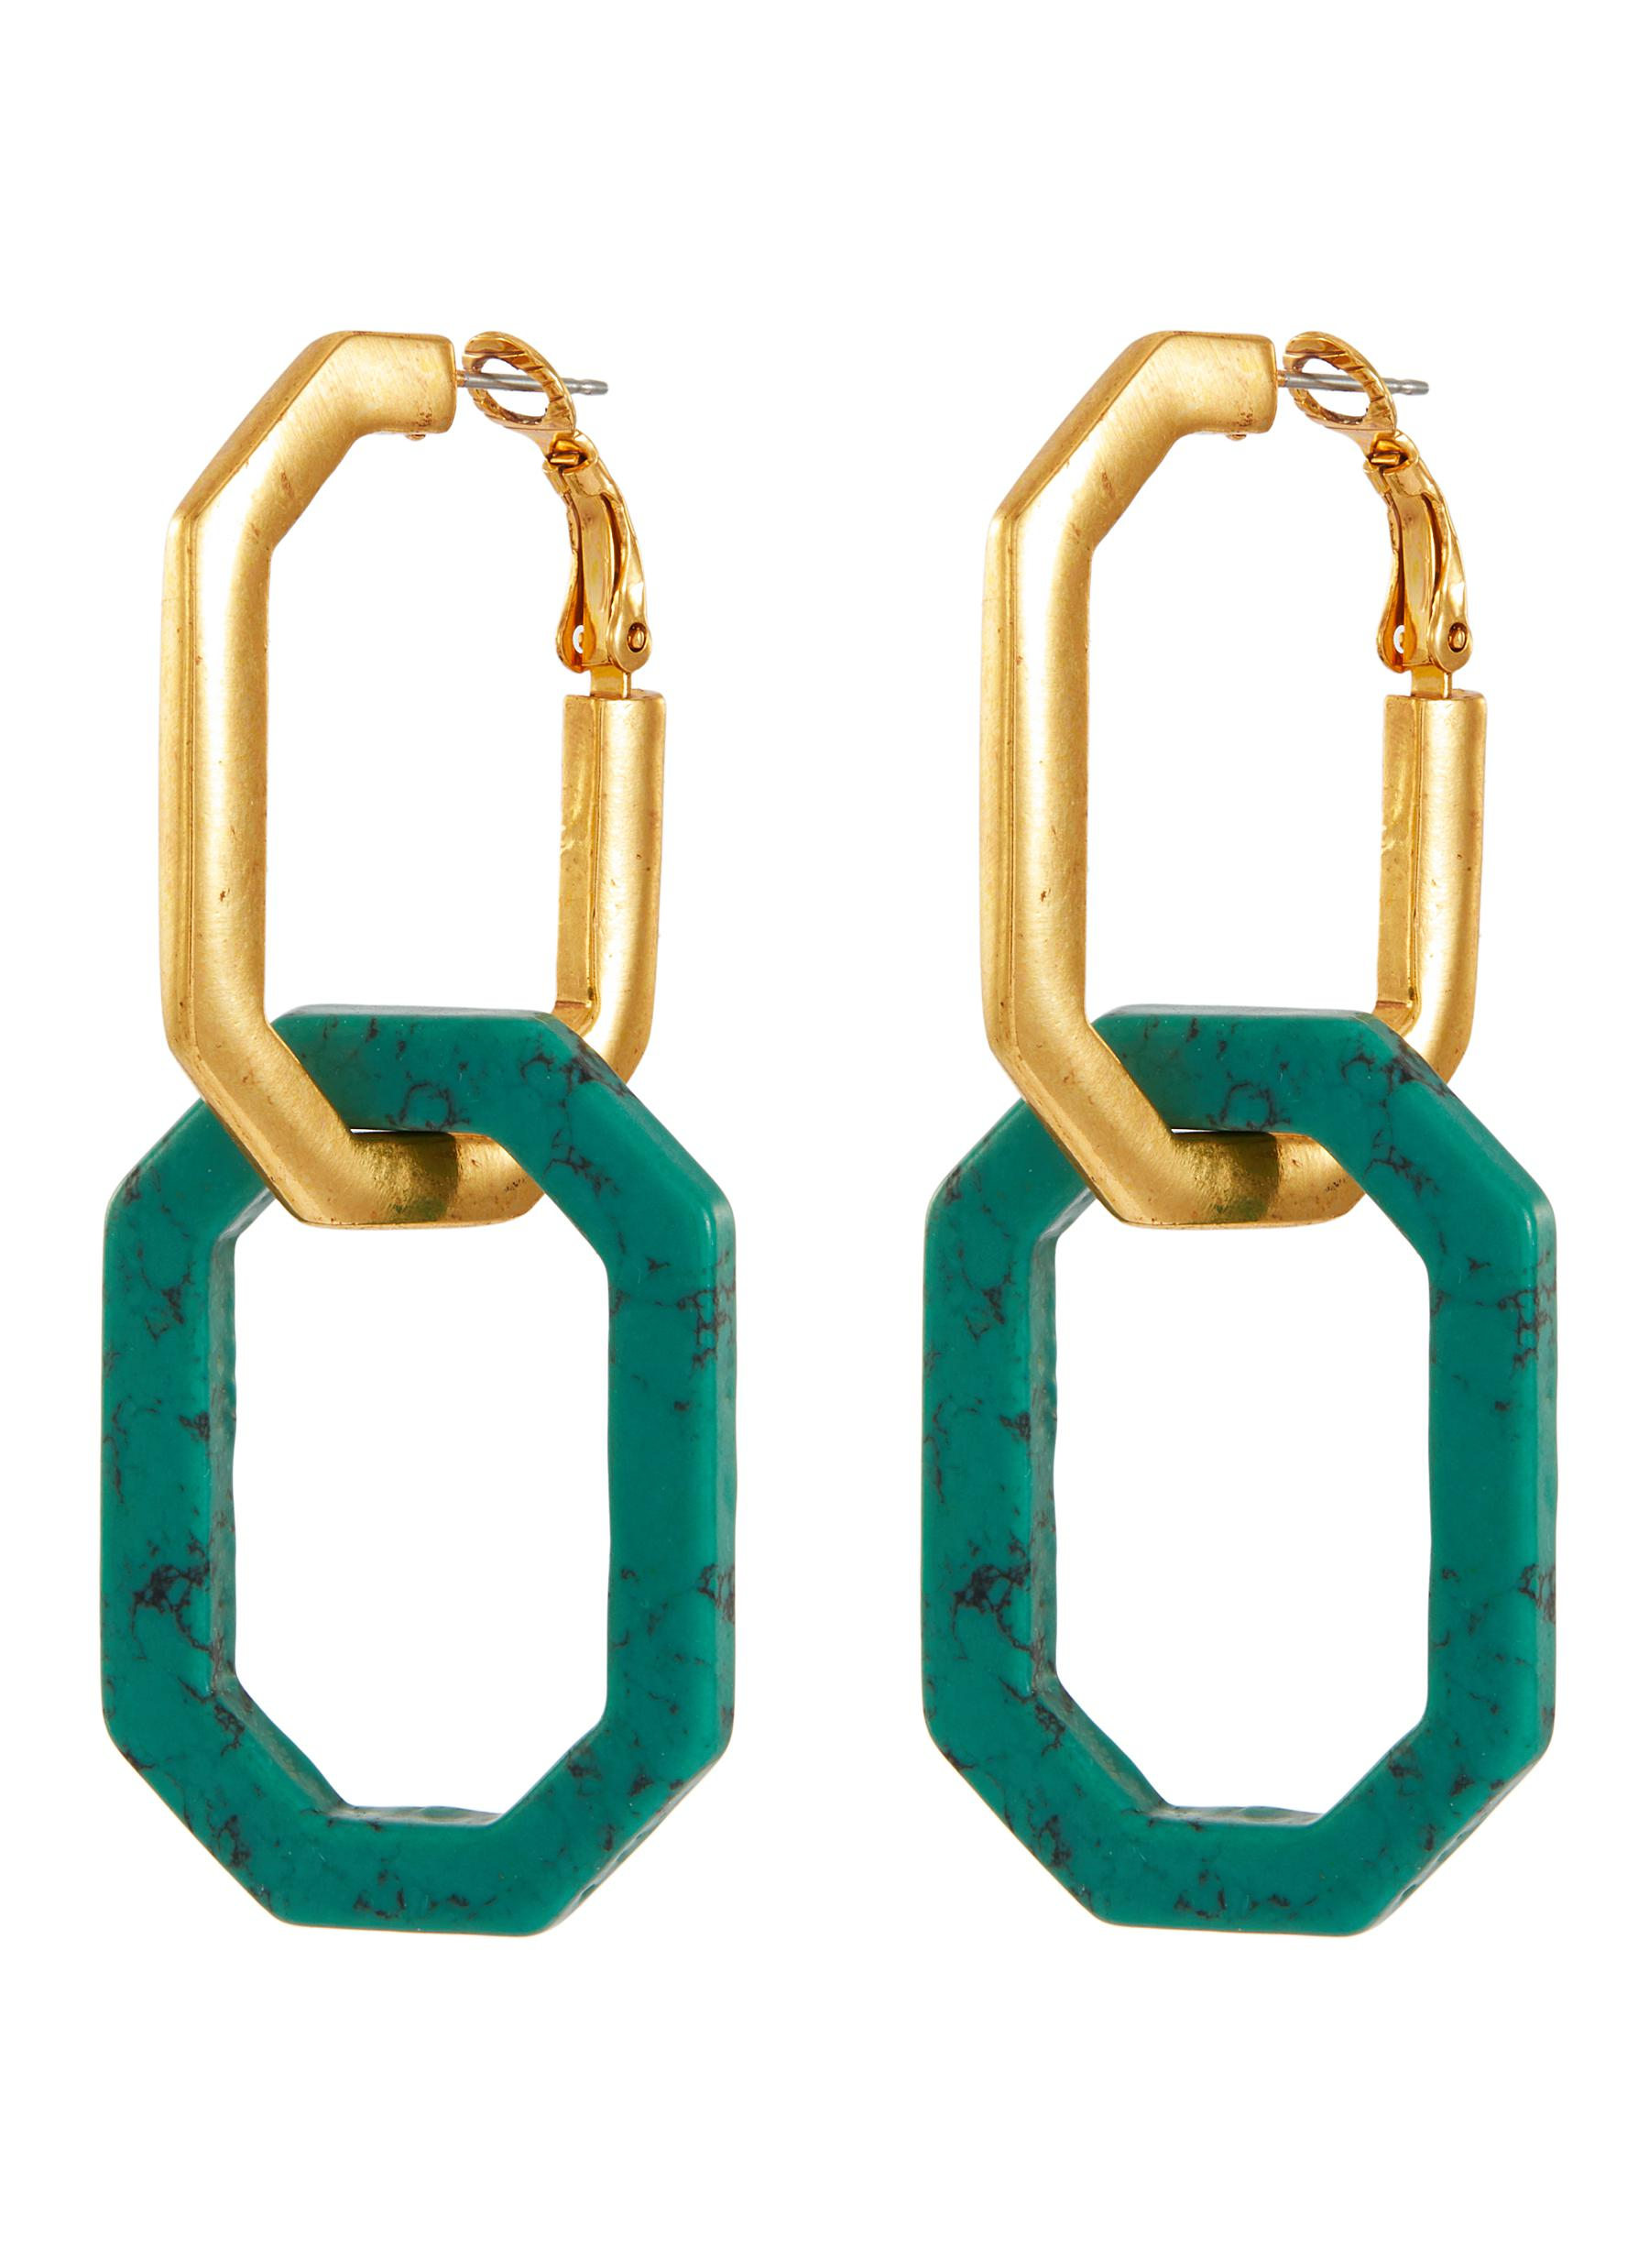 Oscar De La Renta Elongated Octagon Link Earrings